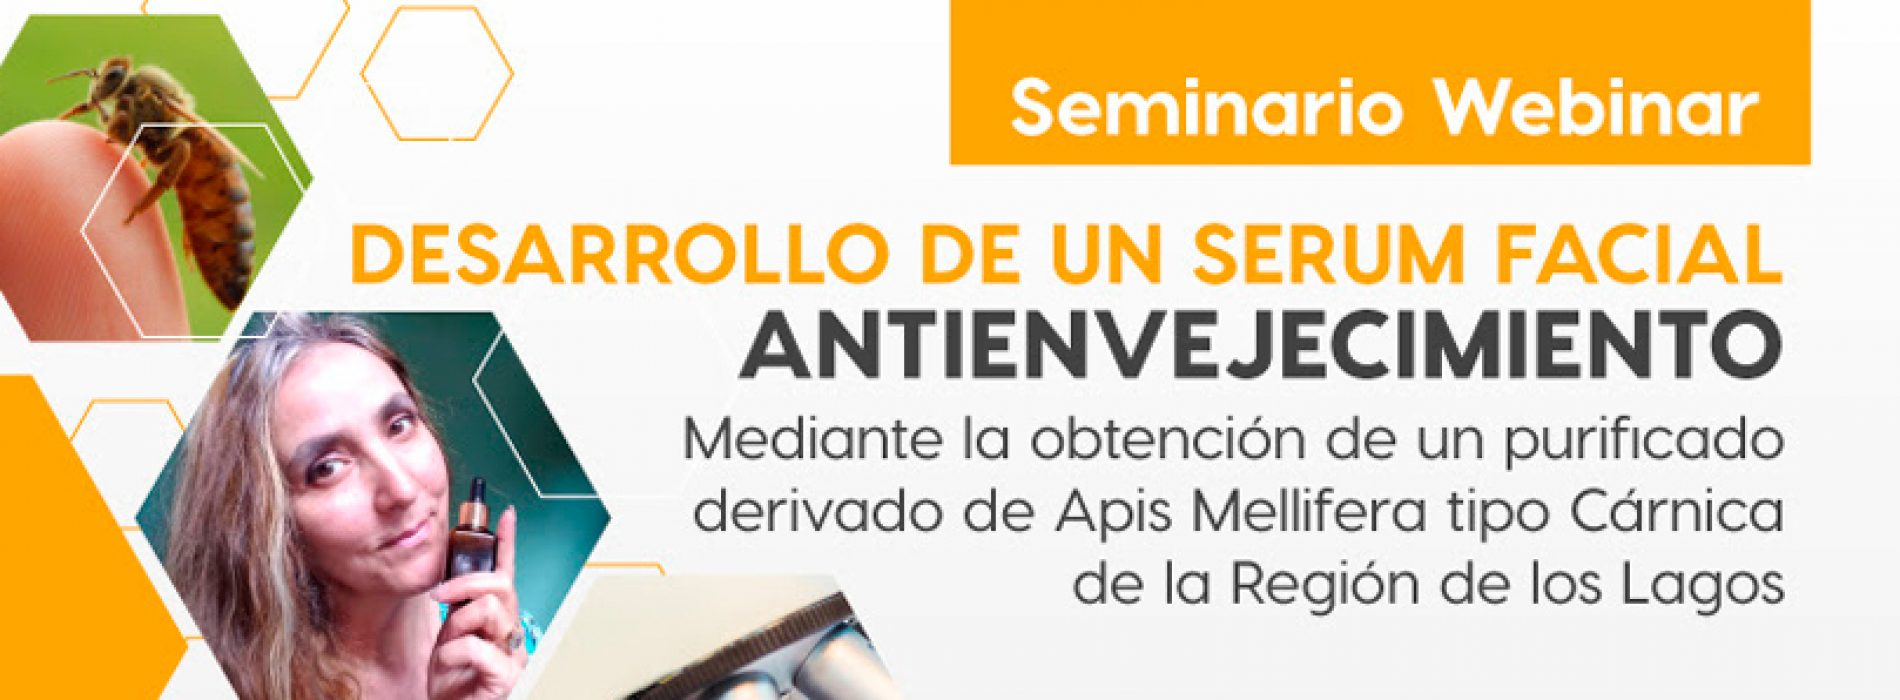 Webinar Development of an anti-aging facial serum by obtaining a derivative of Carnic-type Apis Mellifera from the Los Lagos Region